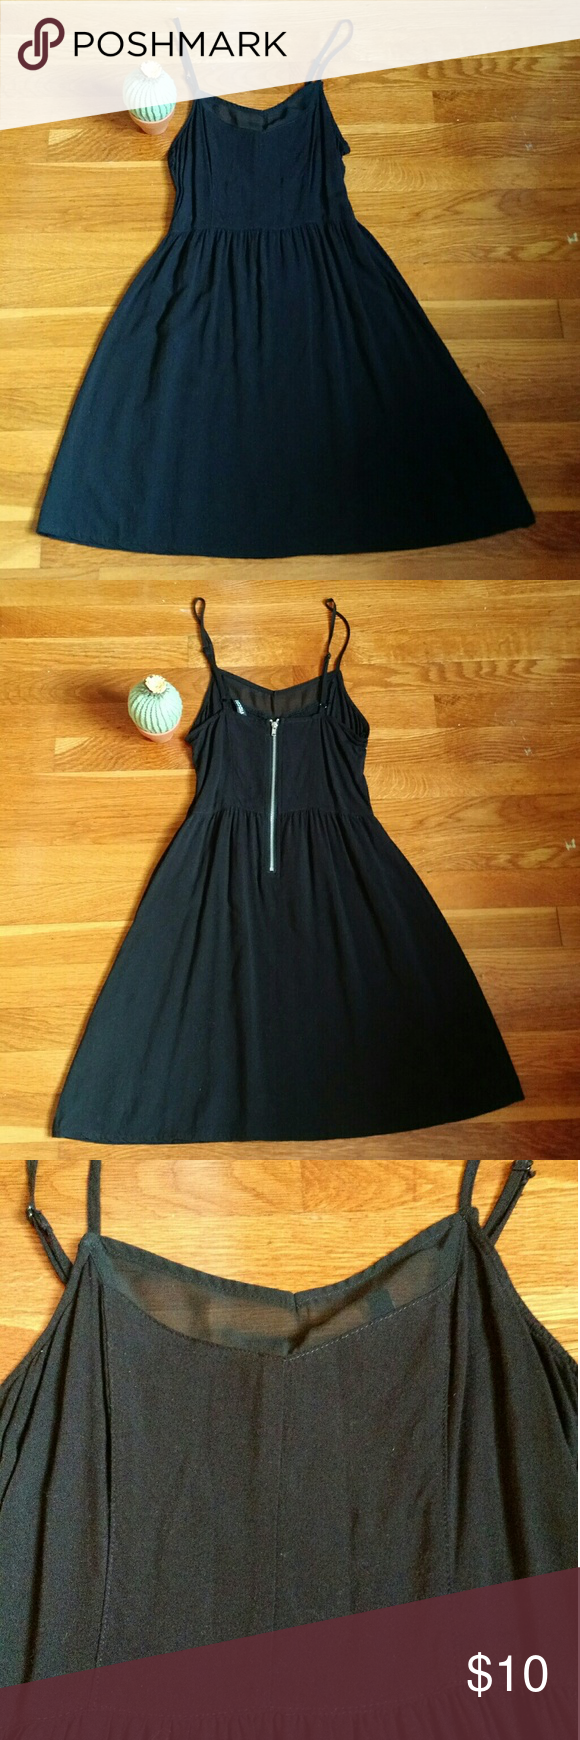 Black skater dress w mesh detail hum dividend tight on top with